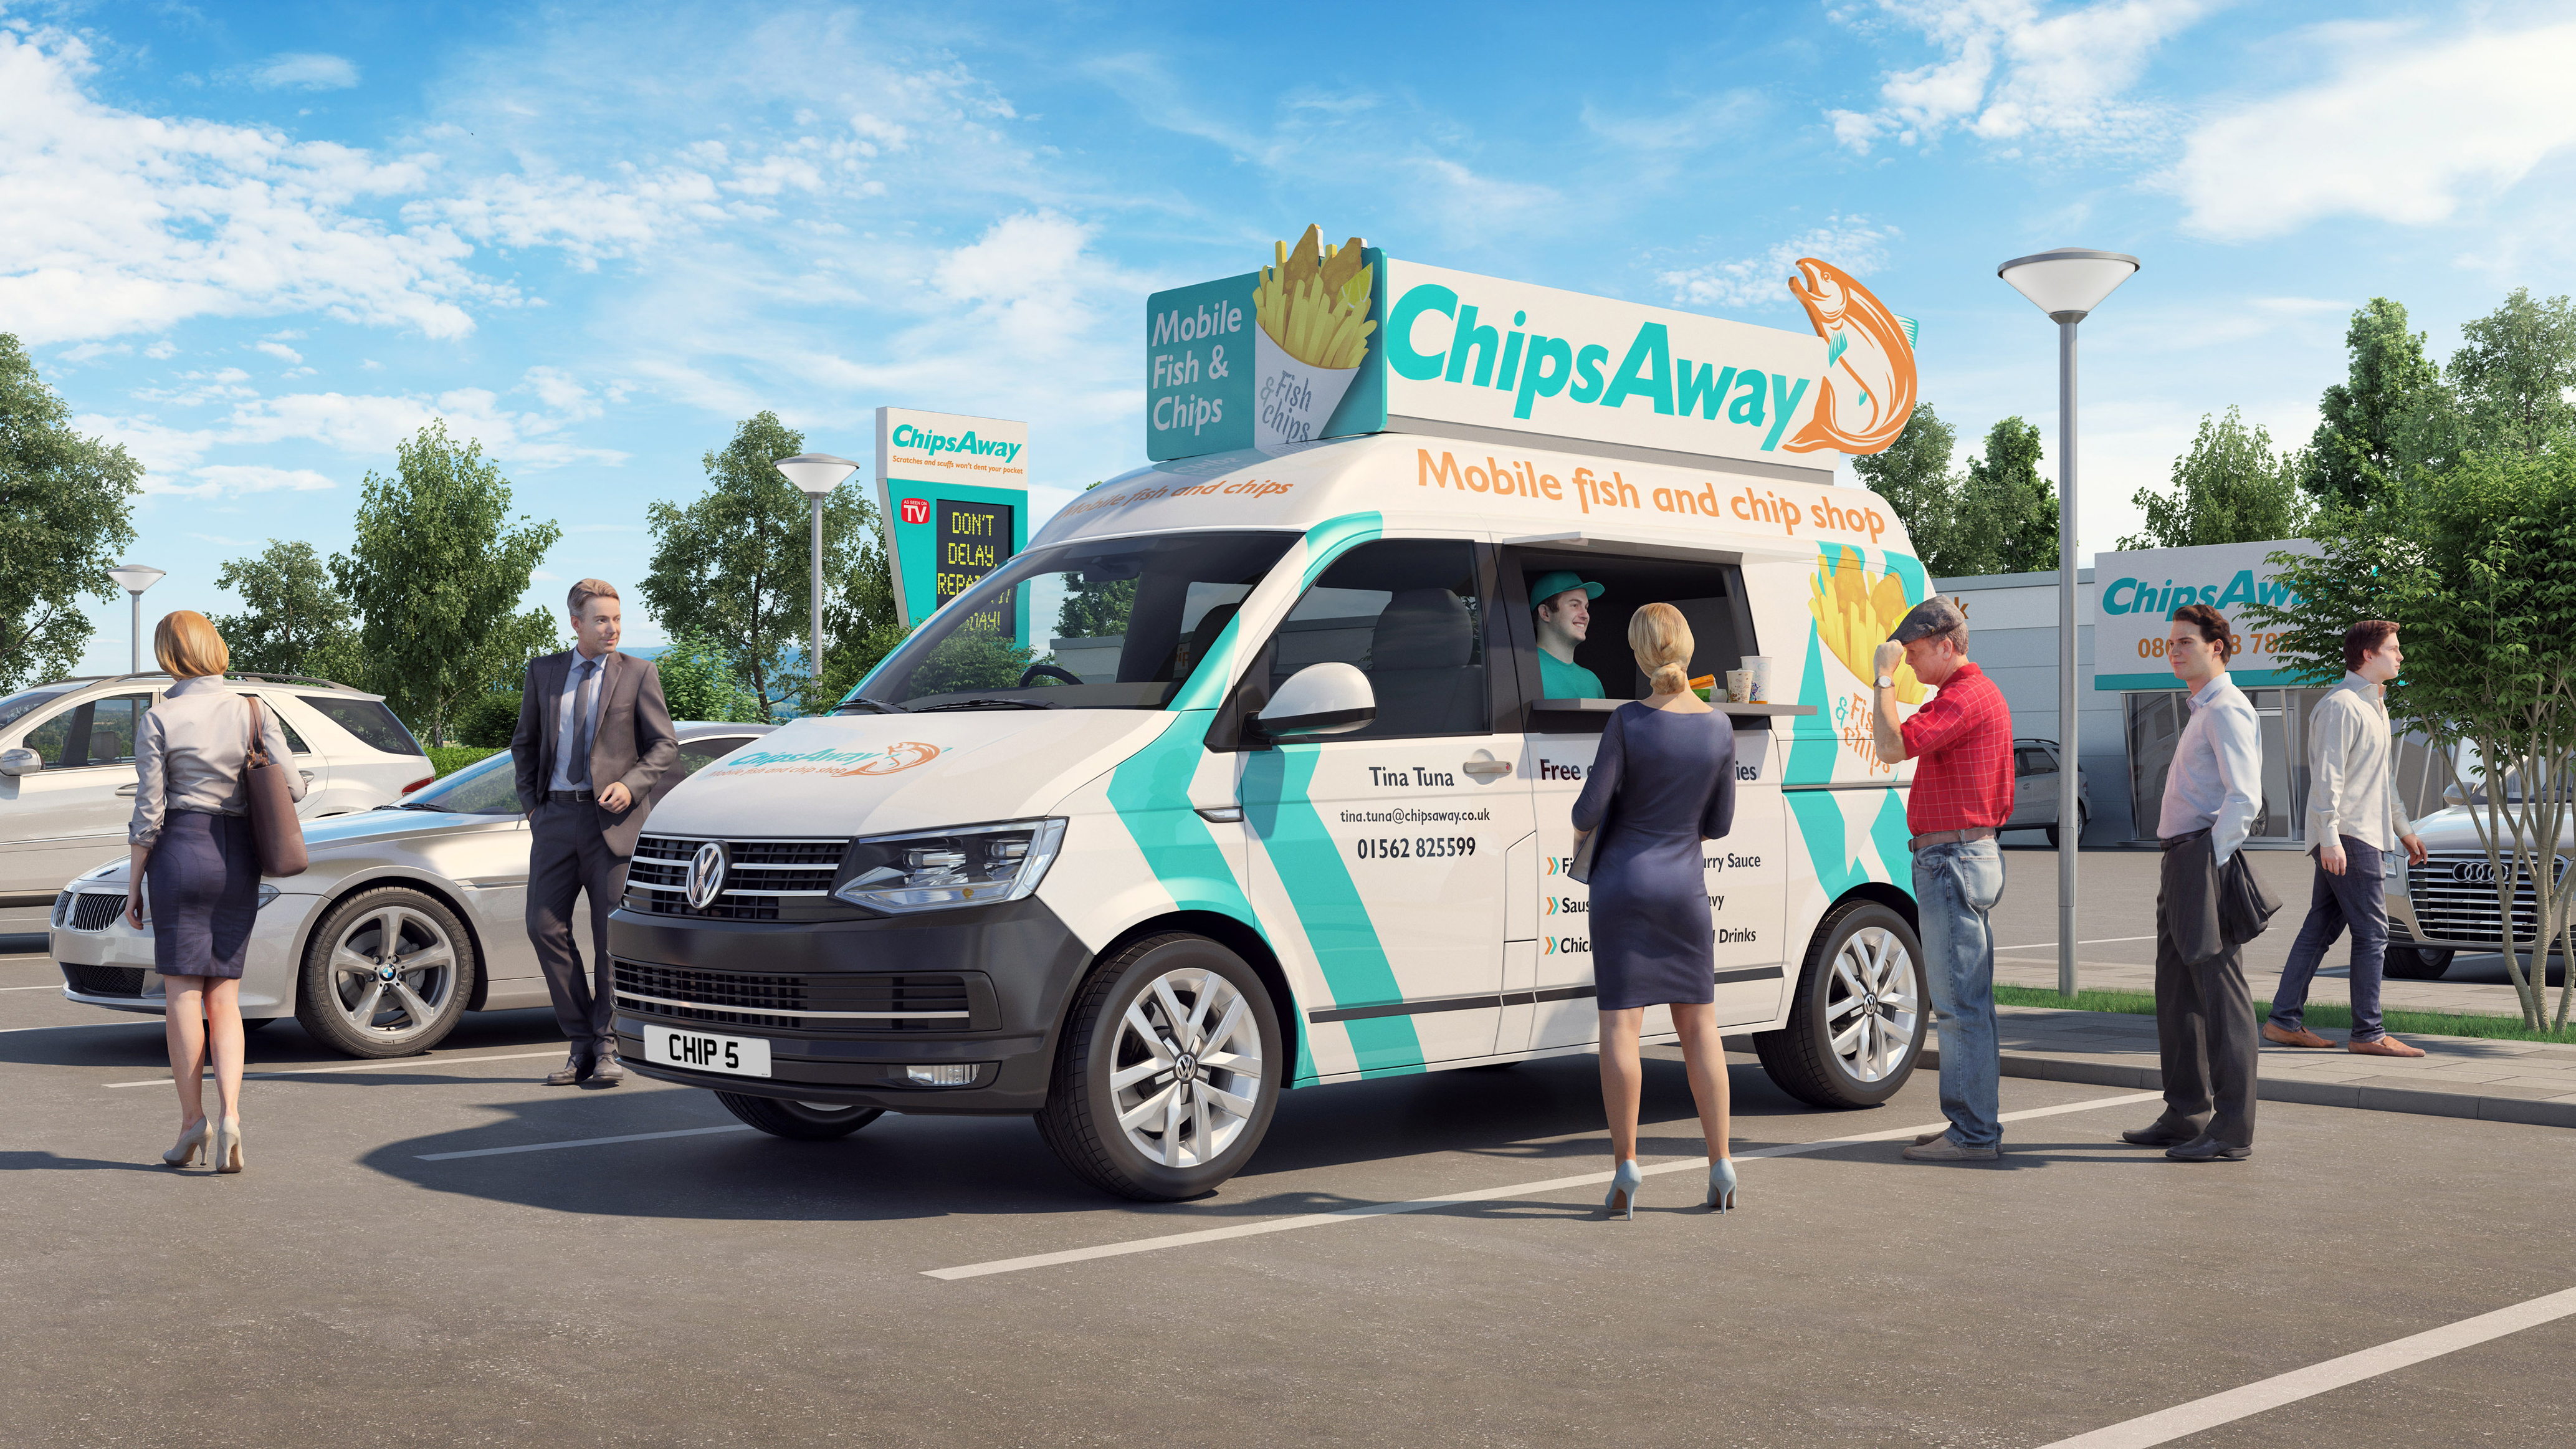 ChipsAway Launches Exciting New Sister Company!